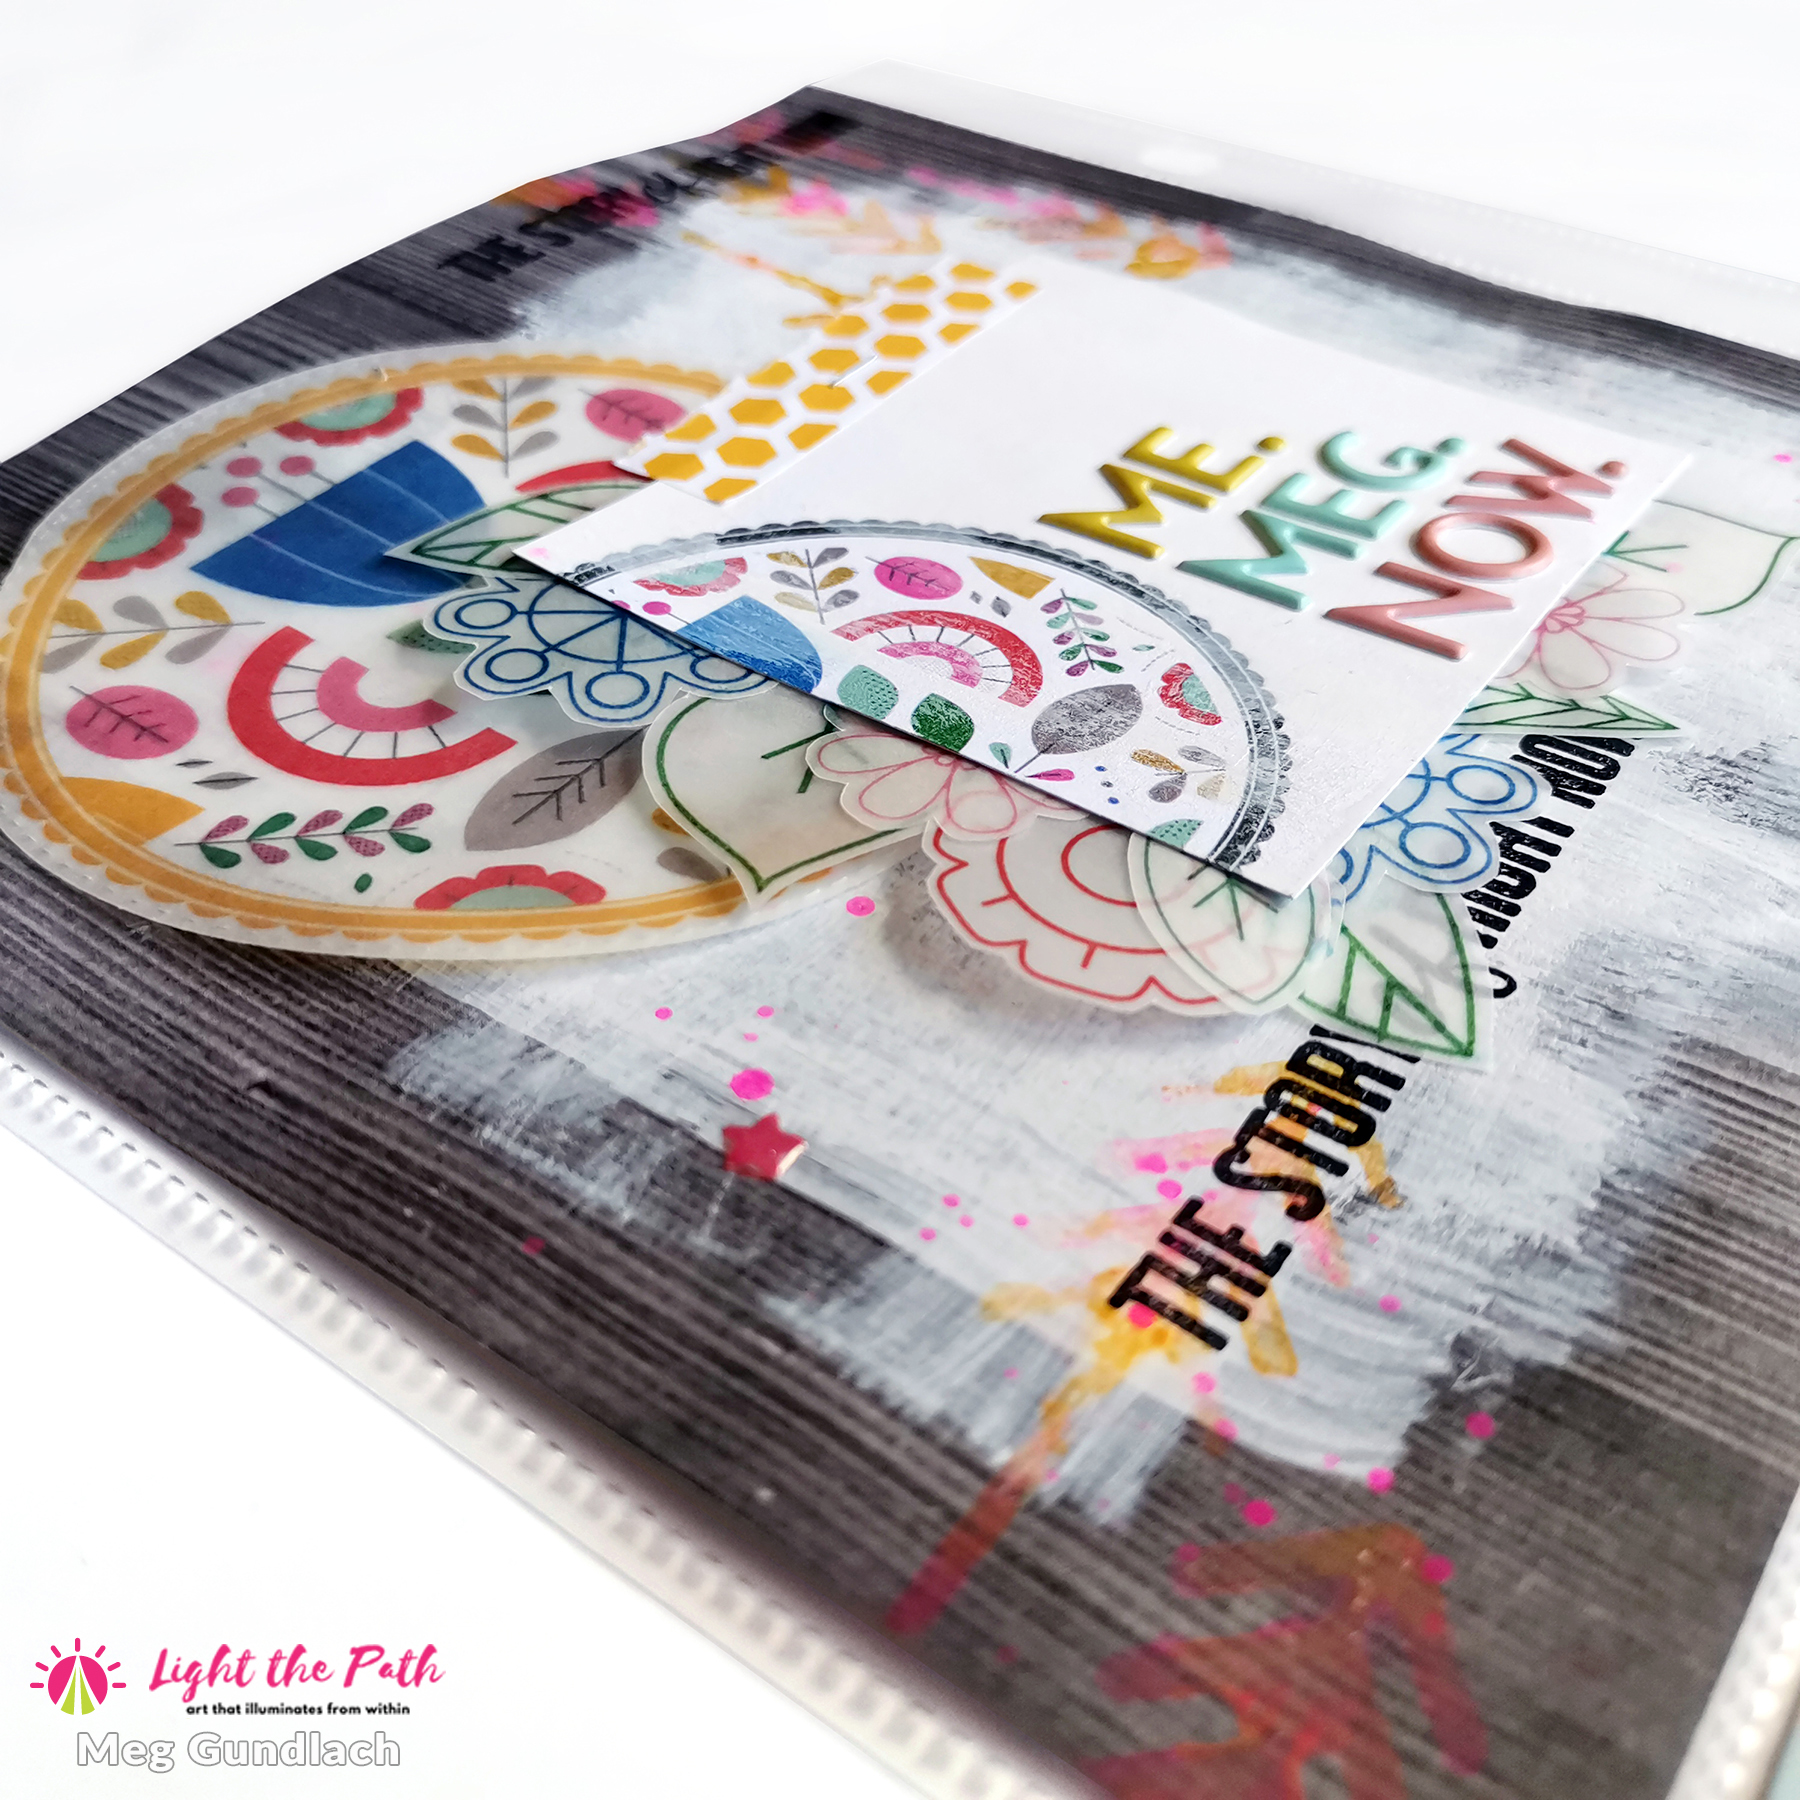 Light The Path Design Team 2021 Meg Gundlach | March Prompt People Places Things